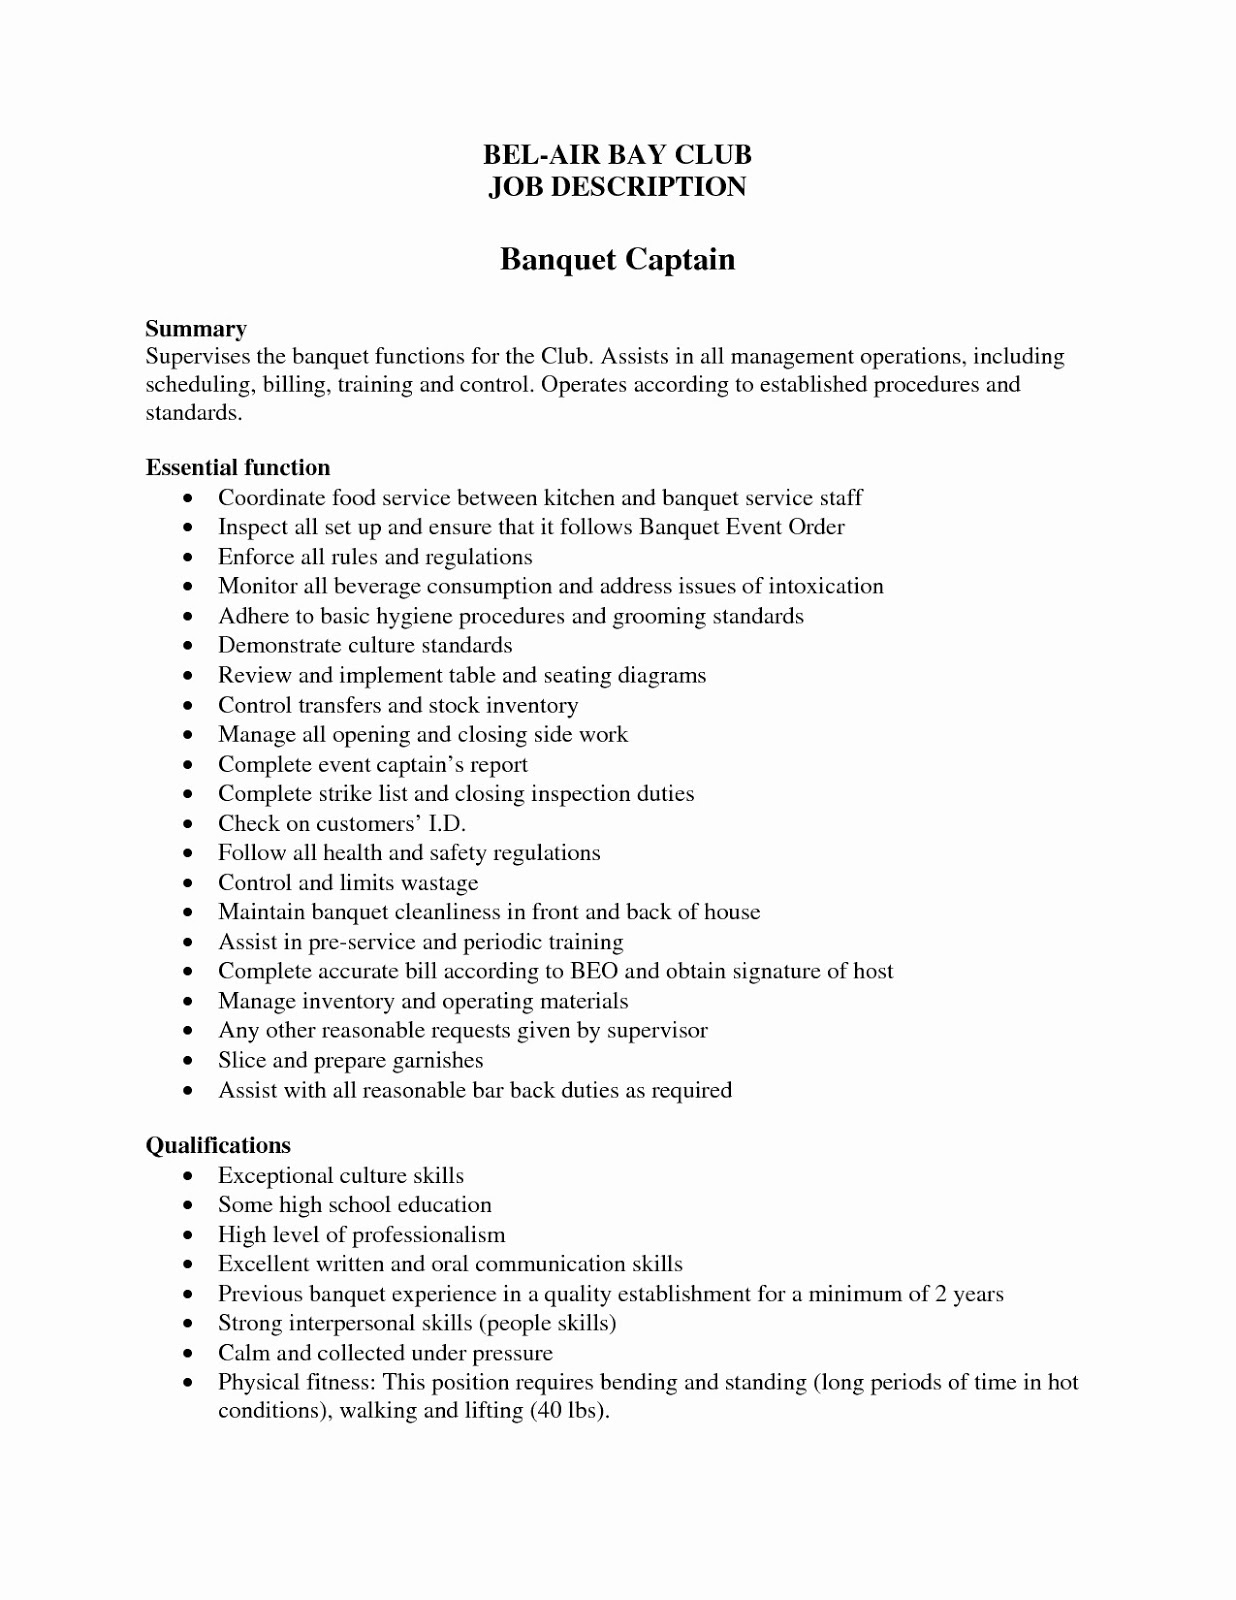 Banquet Captain Resume Samples 2019 Resume Examples 2020 banquet captain resume sample banquet captain duties resume banquet captain resume examples banquet captain job description for resume banquet captain job description resume banquet captain resume objective